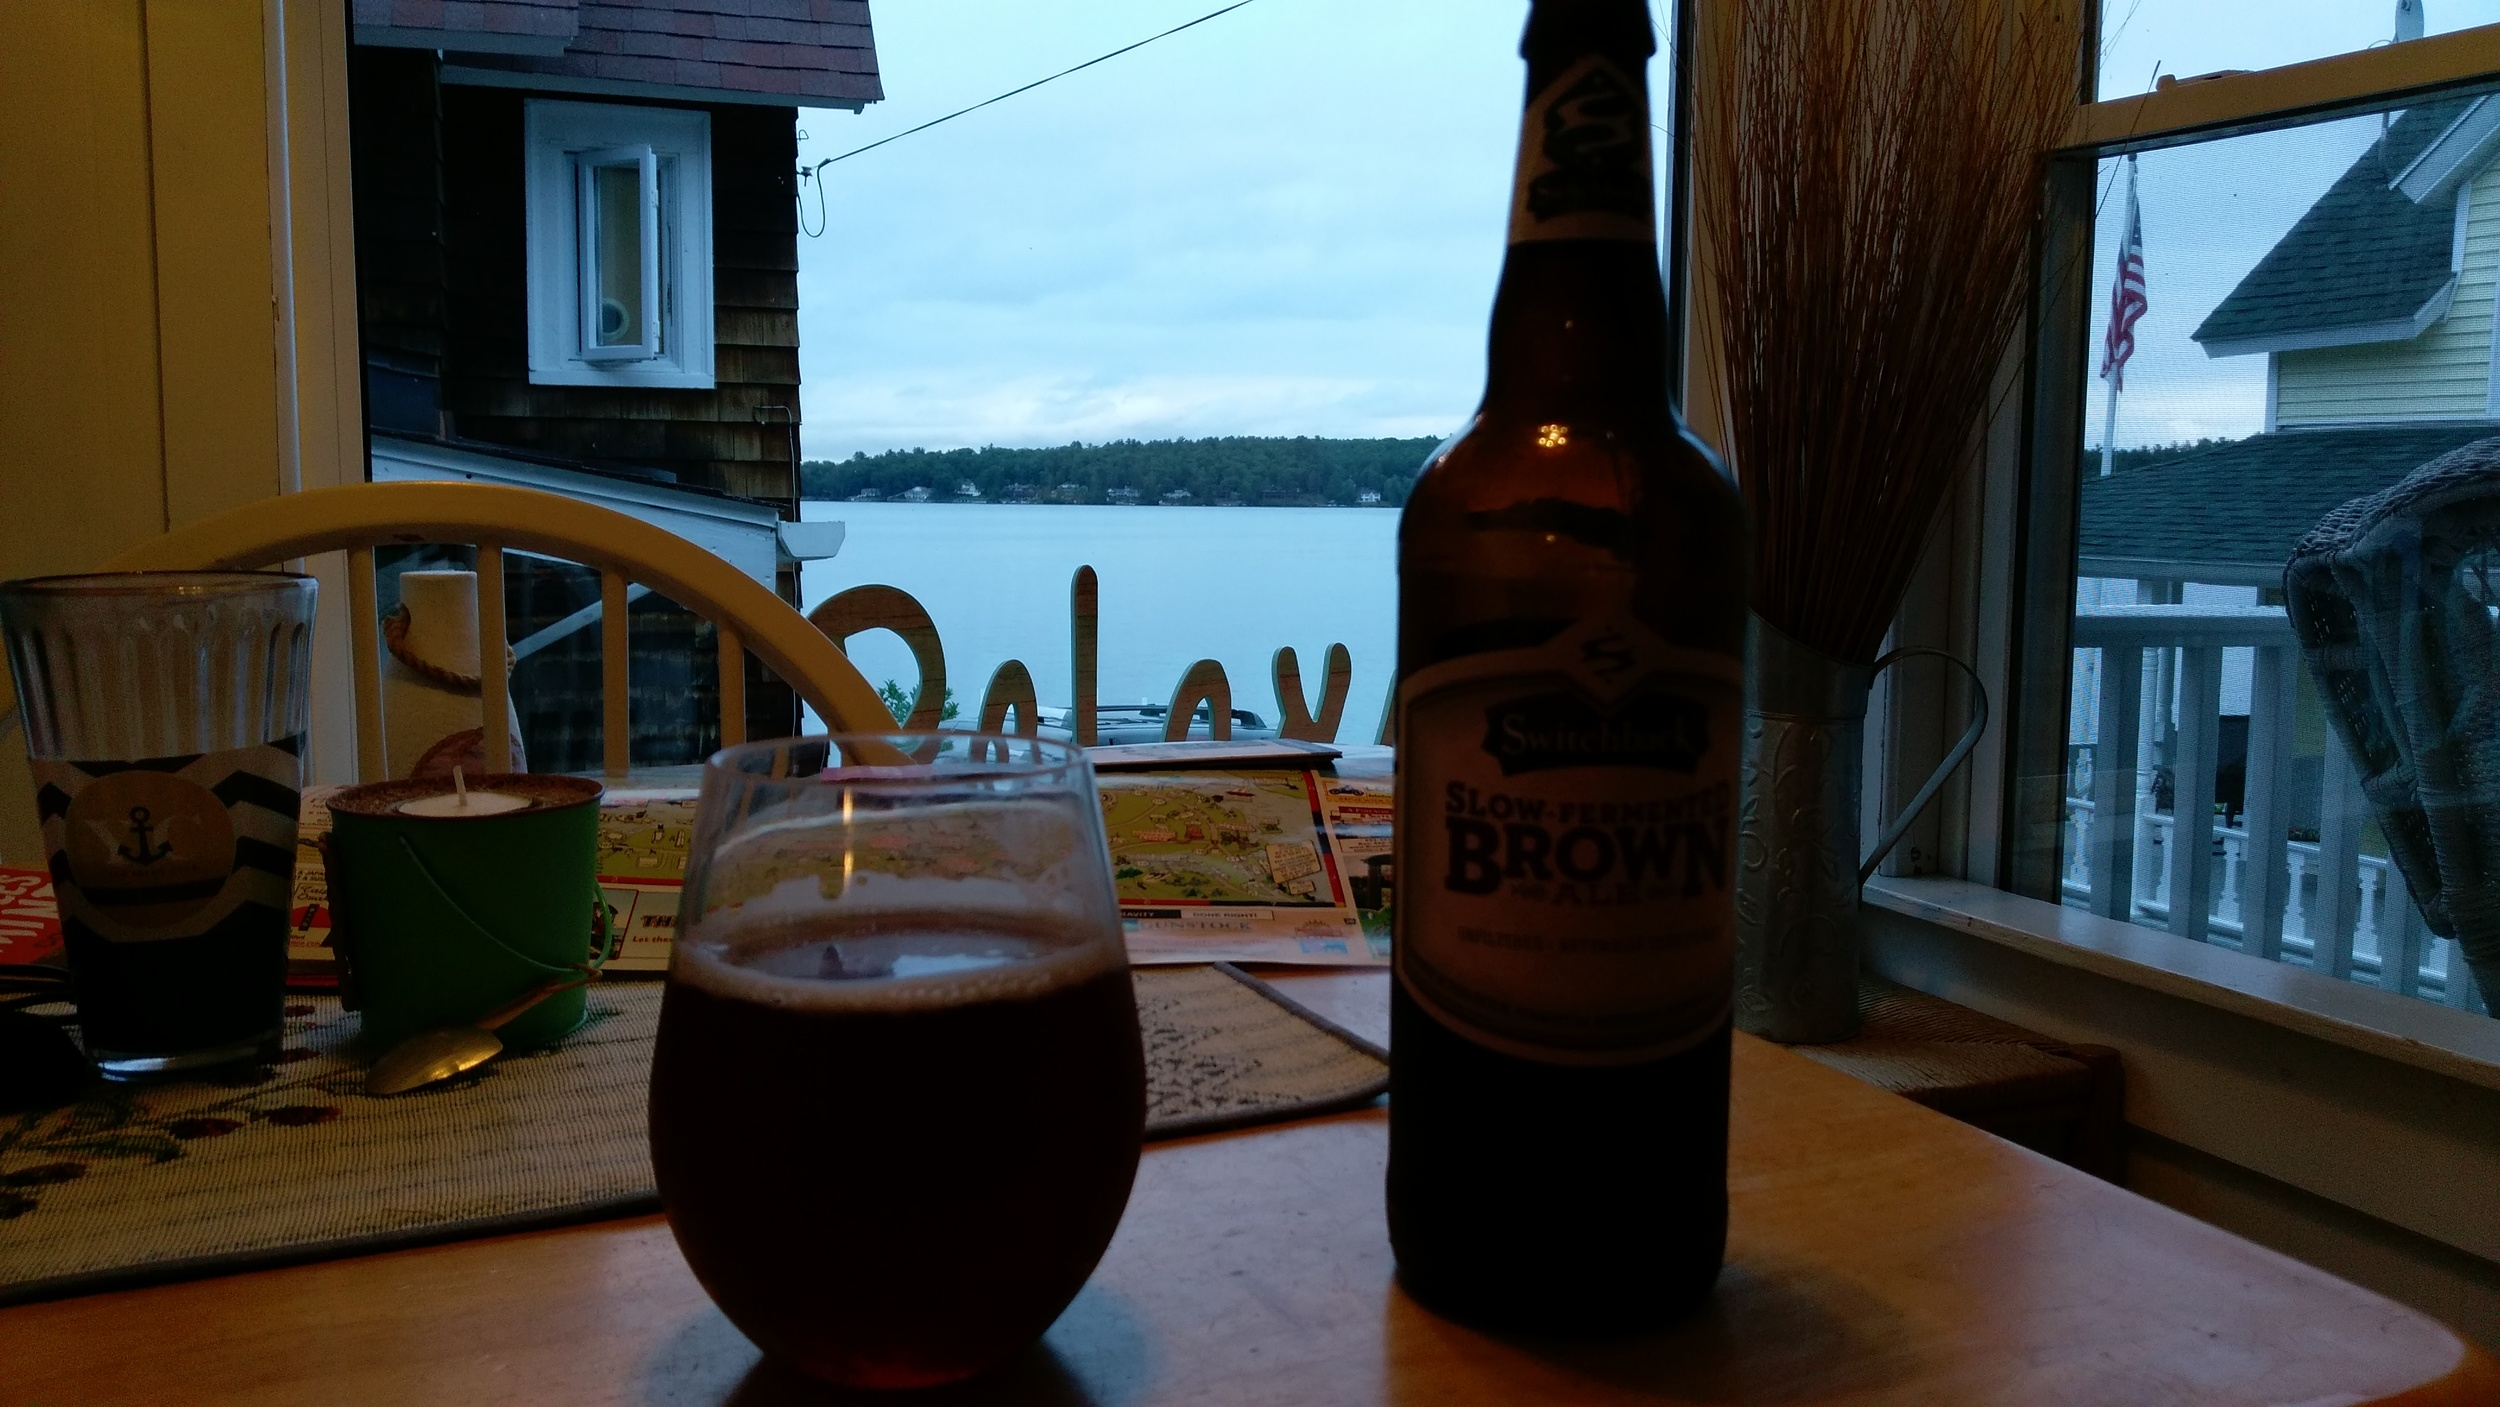 Mmmm. Beer from the lake house.